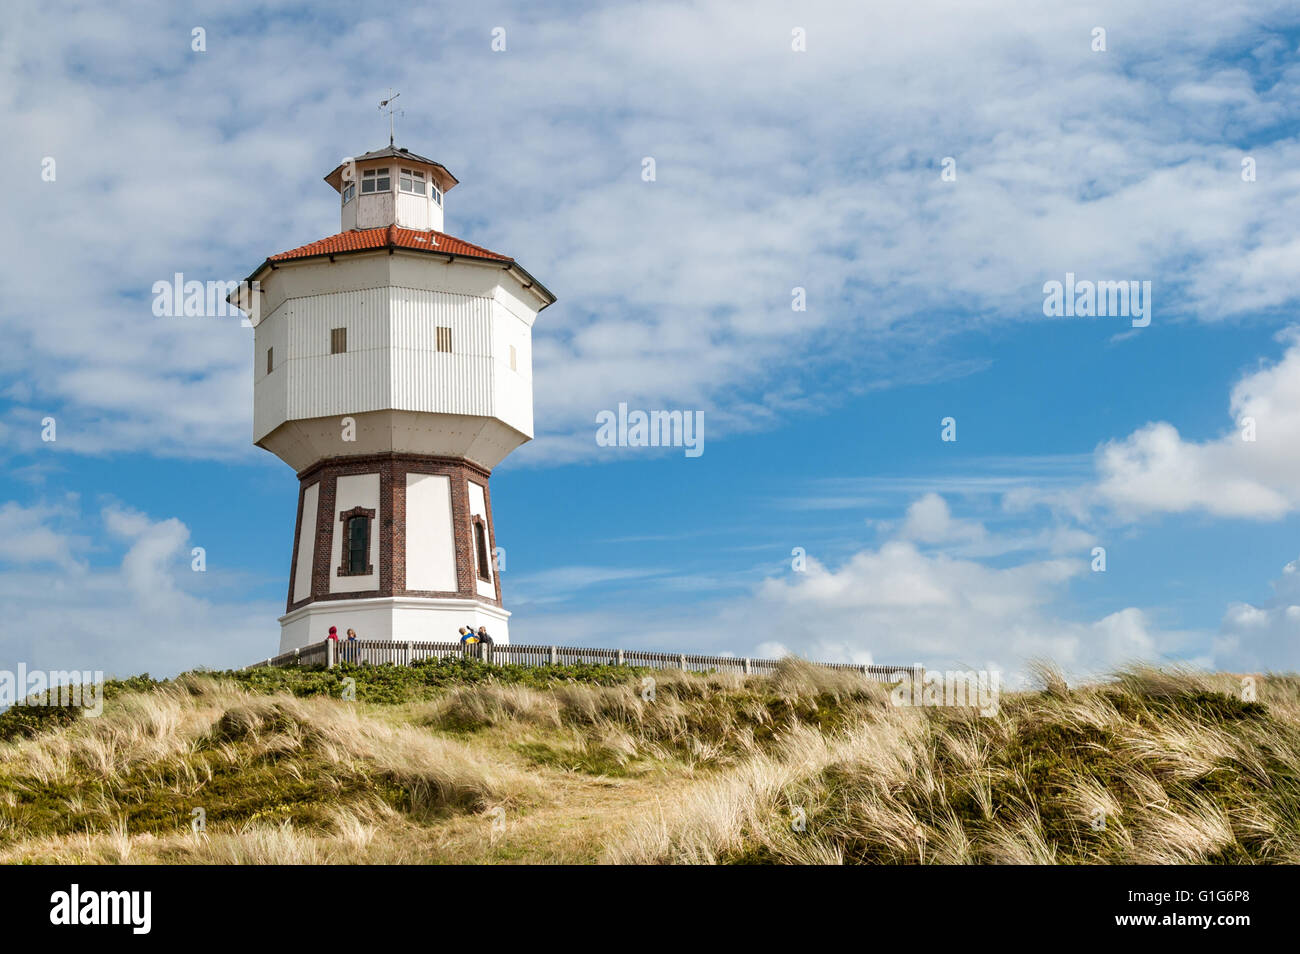 Water tower in the dunes of the East Frisian island Langeoog, Lower Saxony, Germany Stock Photo